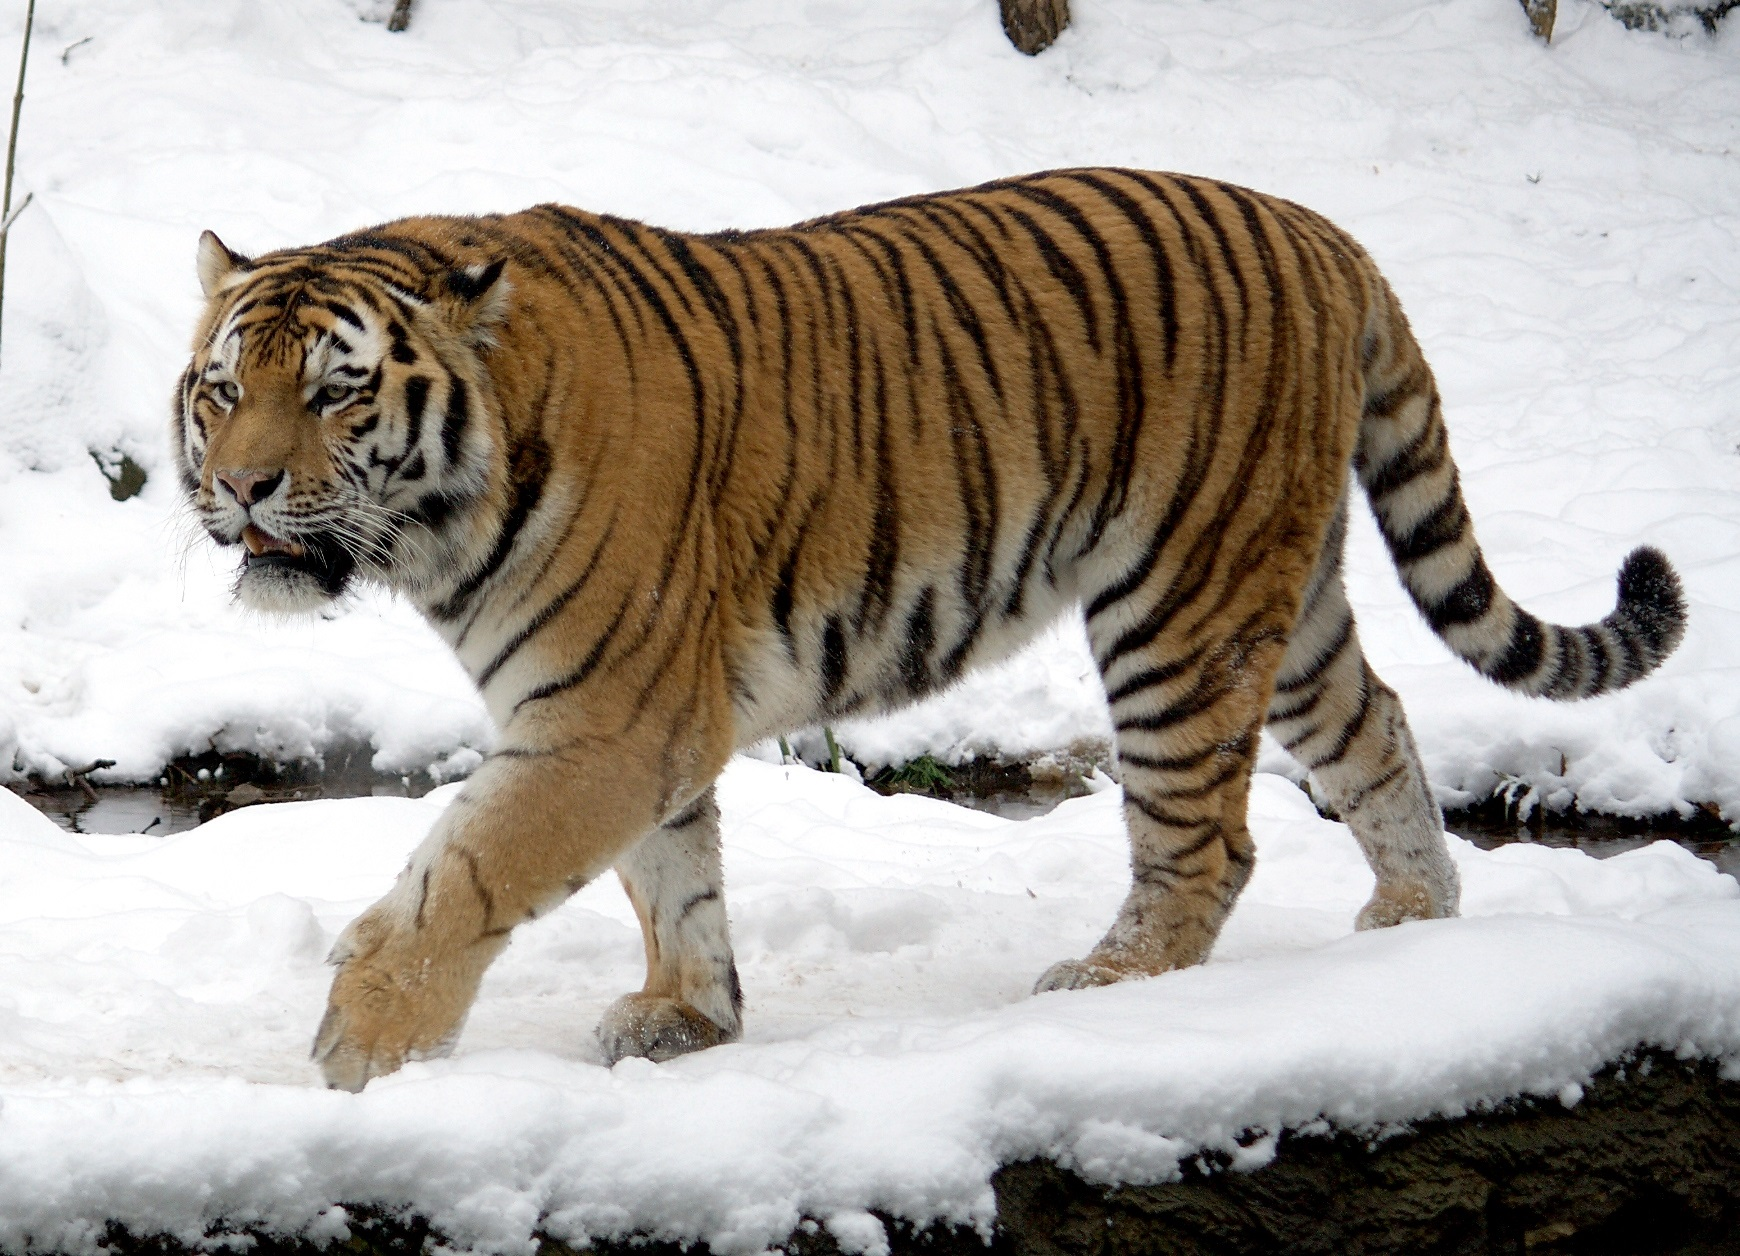 Siberian Tiger | The Parody Wiki | FANDOM powered by Wikia